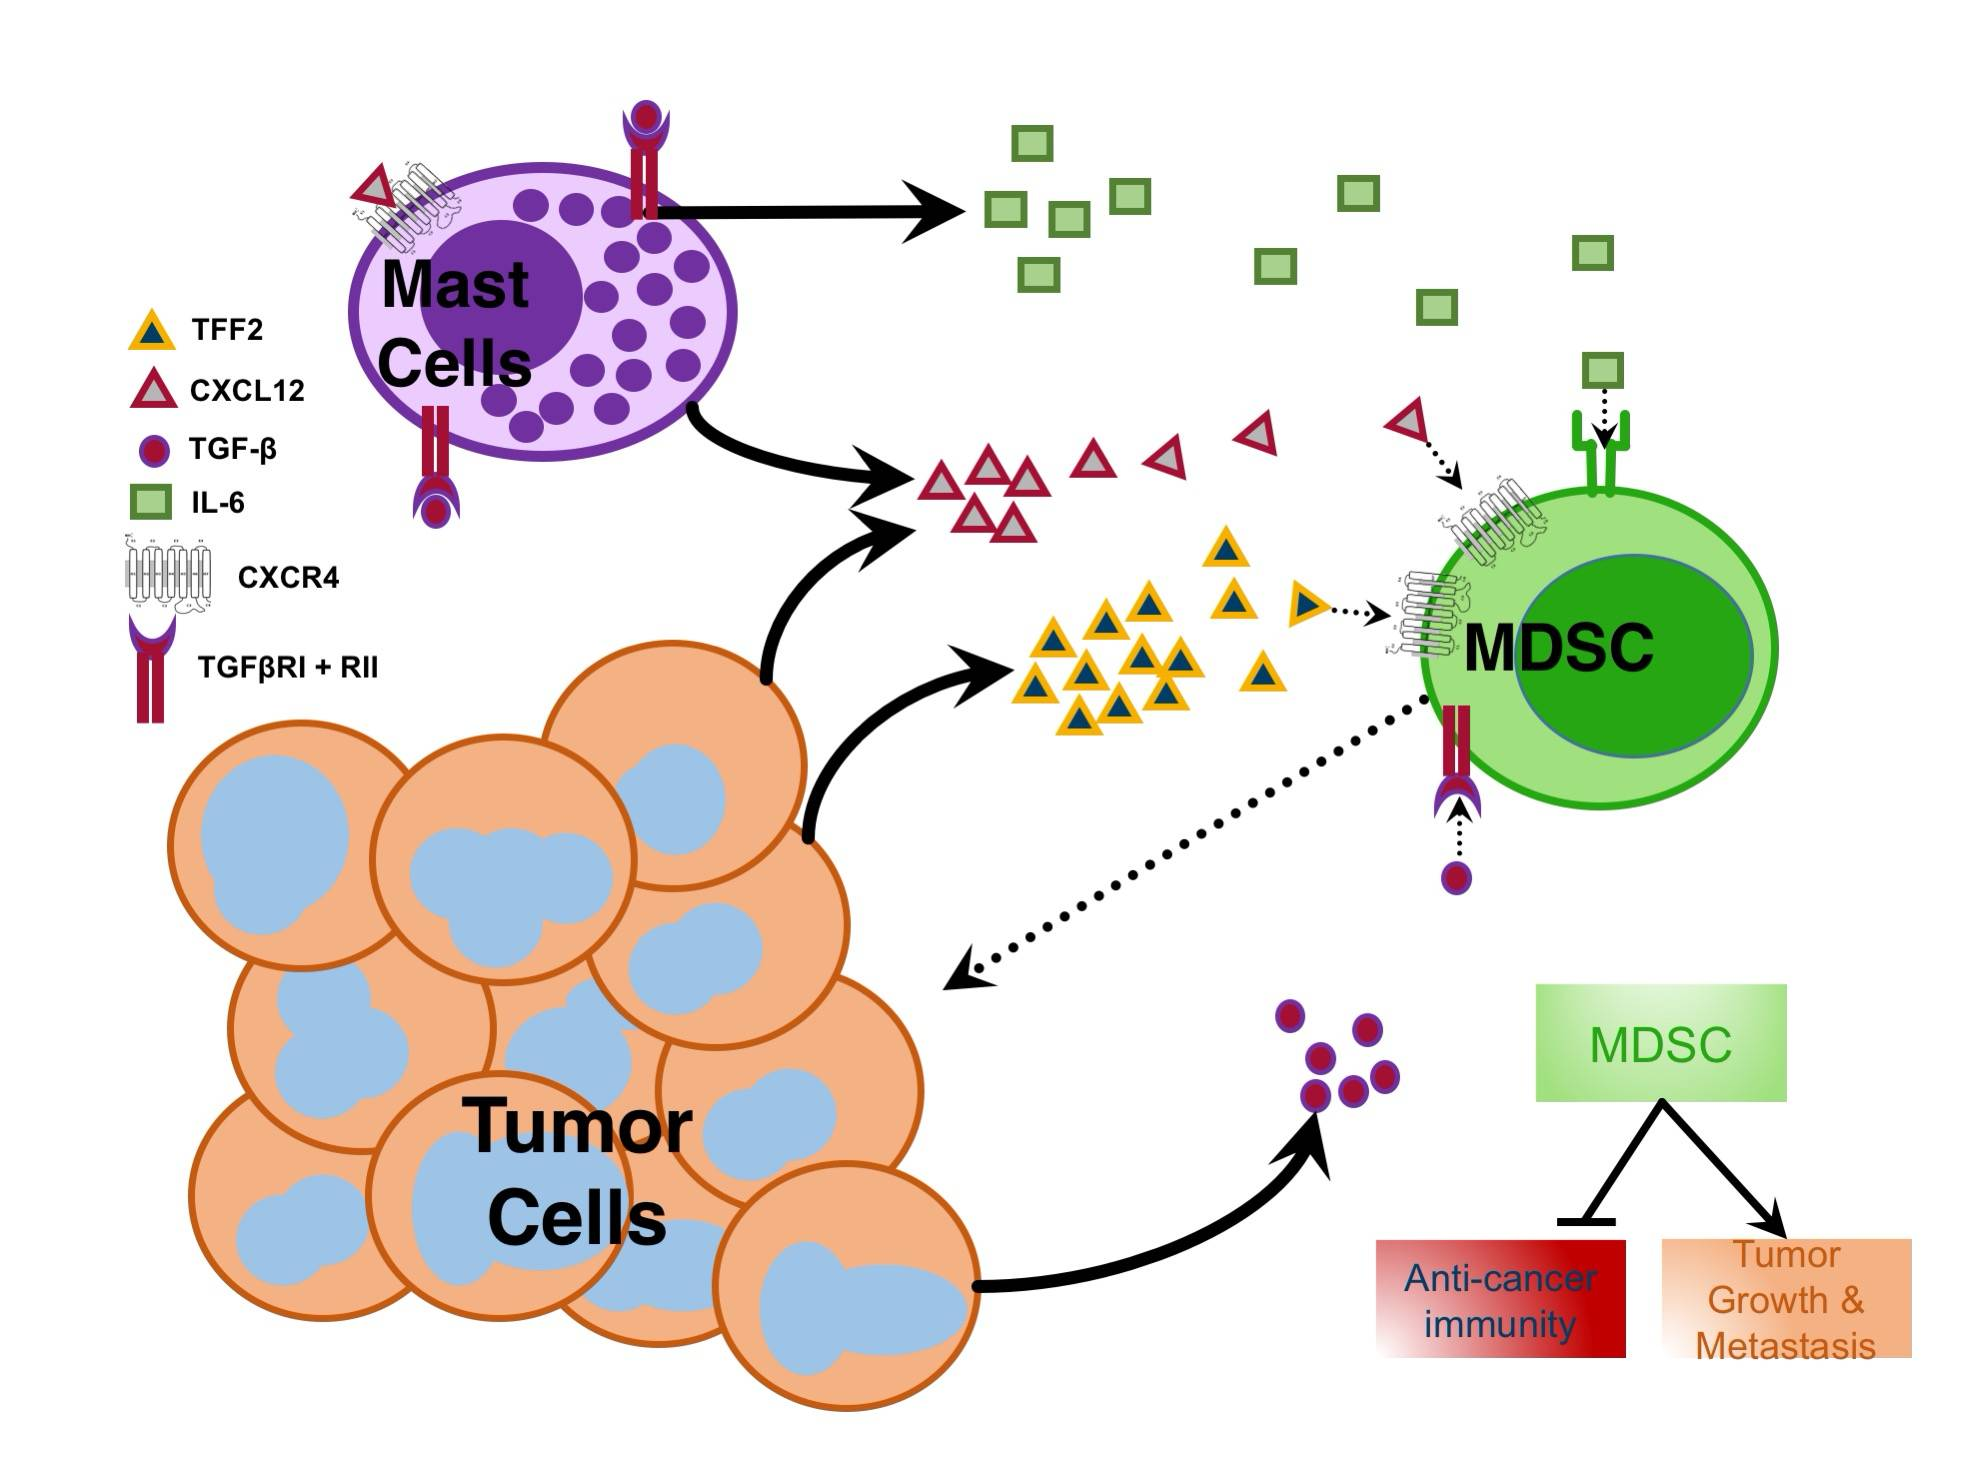 Mast Cells Myeloid Derived Suppressor Cells and Cancer